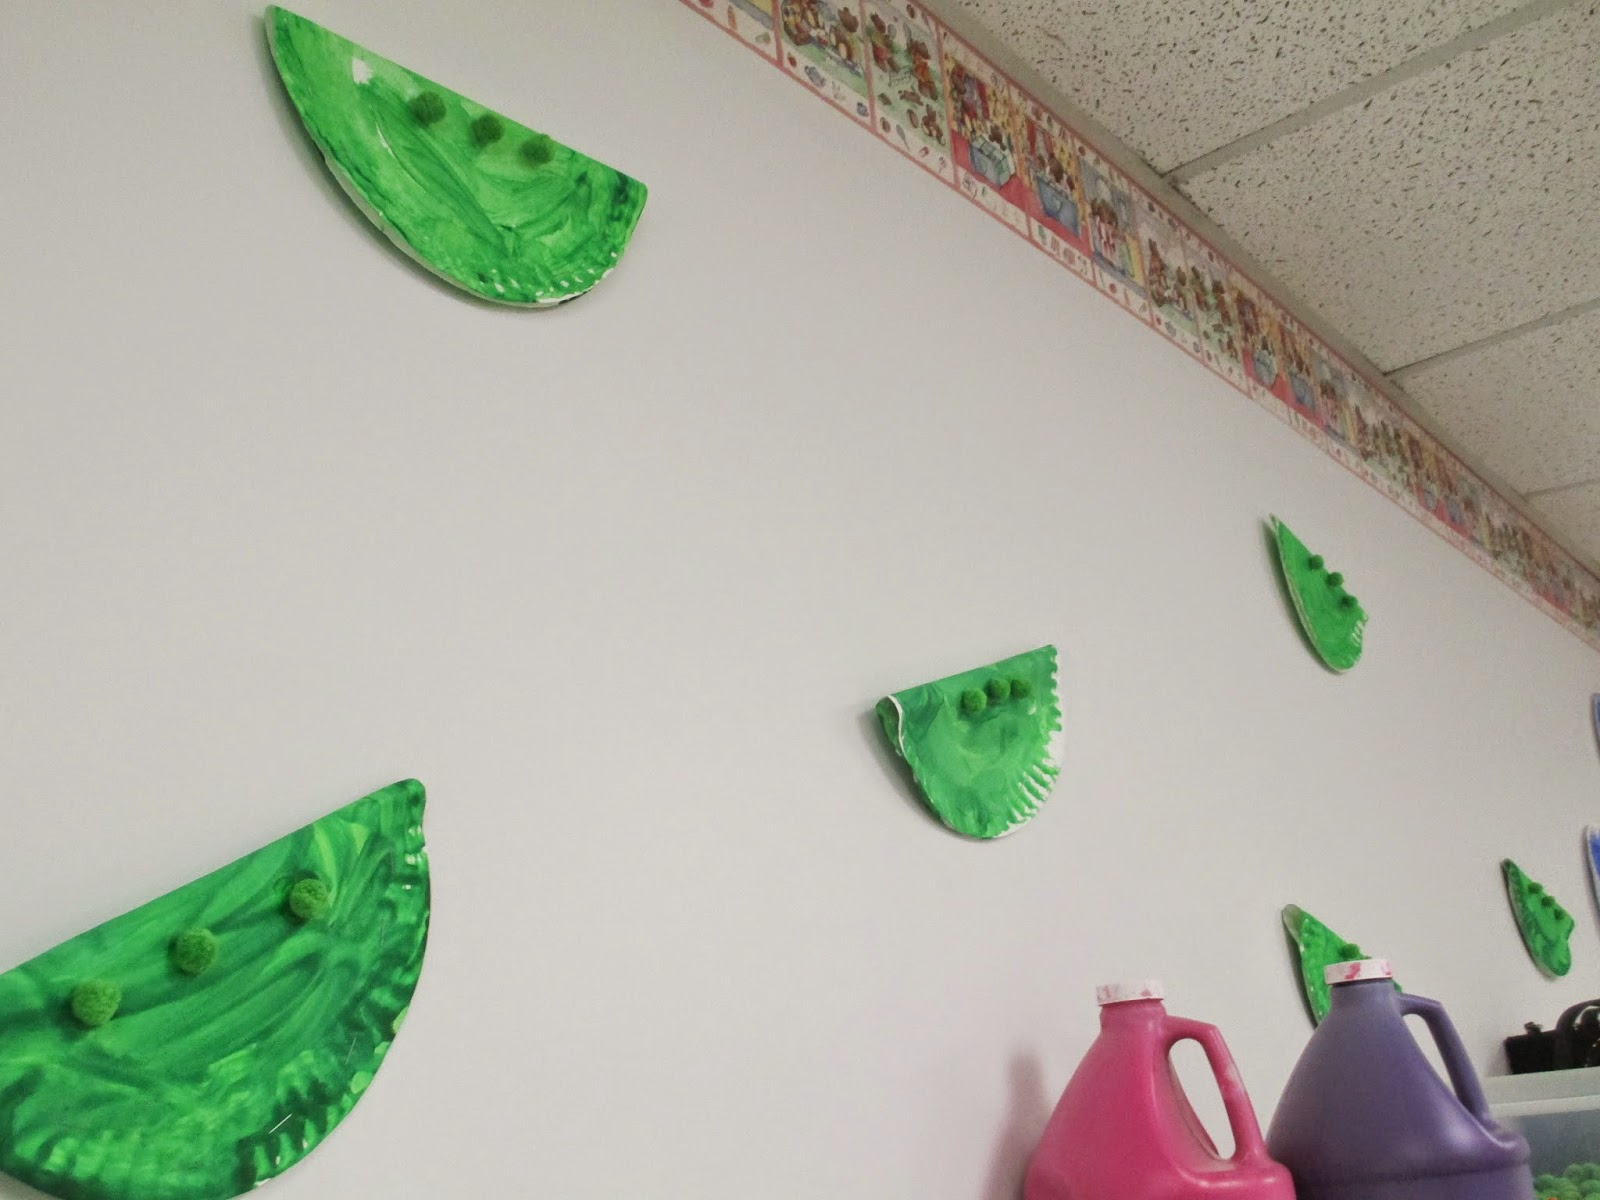 The Pa-Paw Patch, vale nc childcare